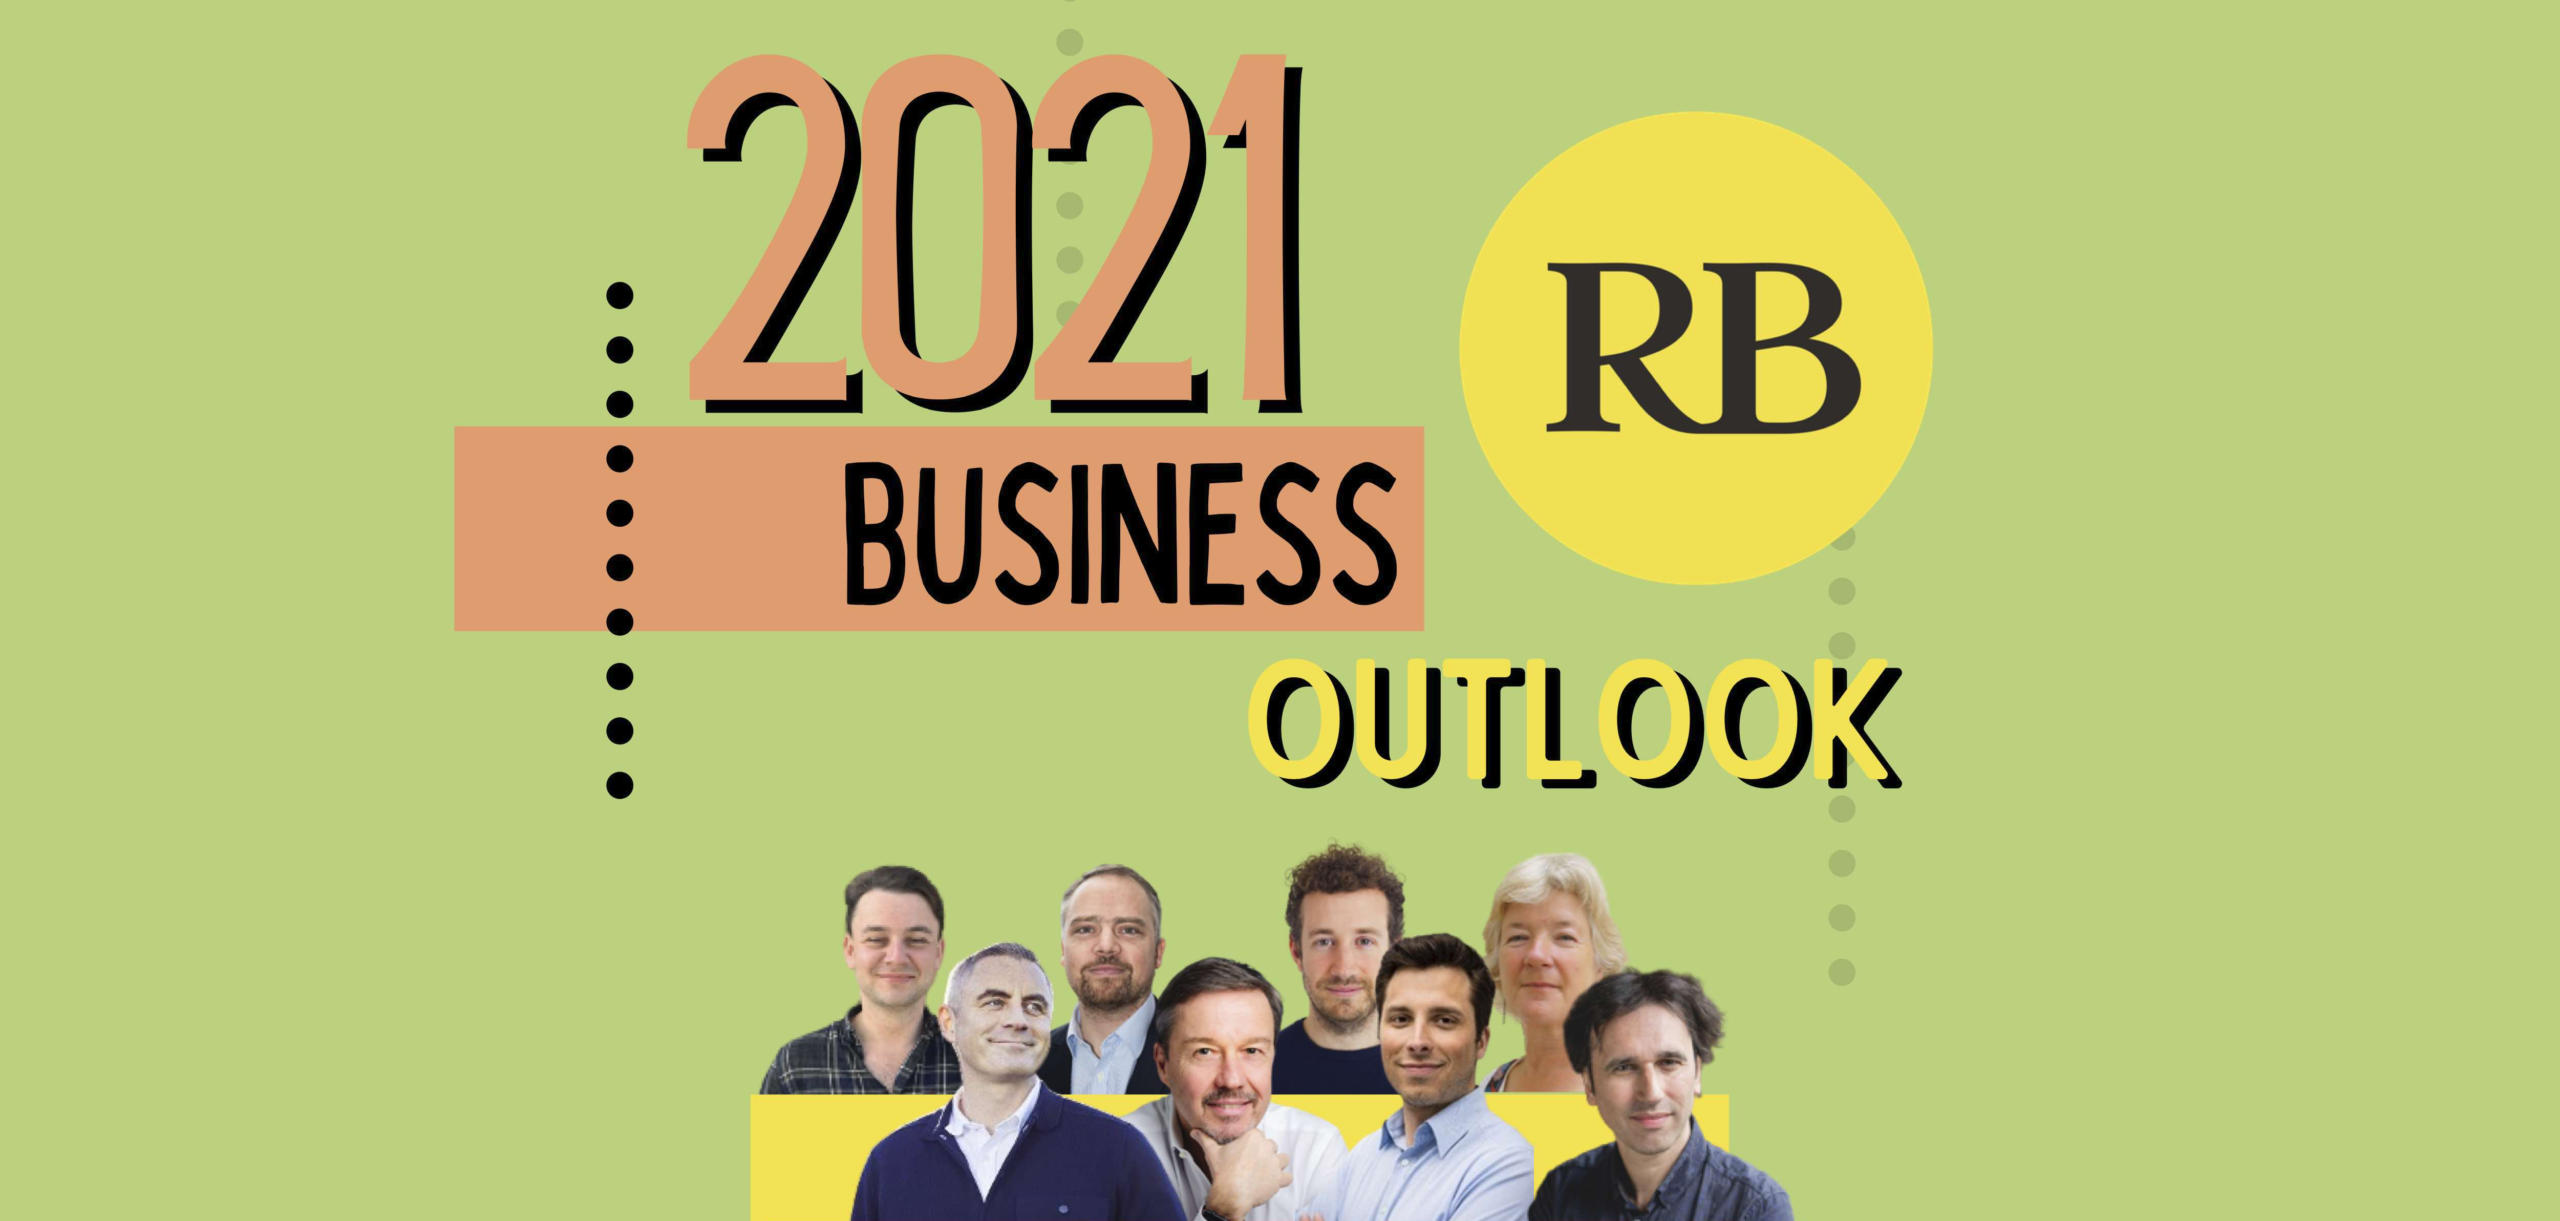 2021 business outlook: Small business leaders reveal trends and predictions